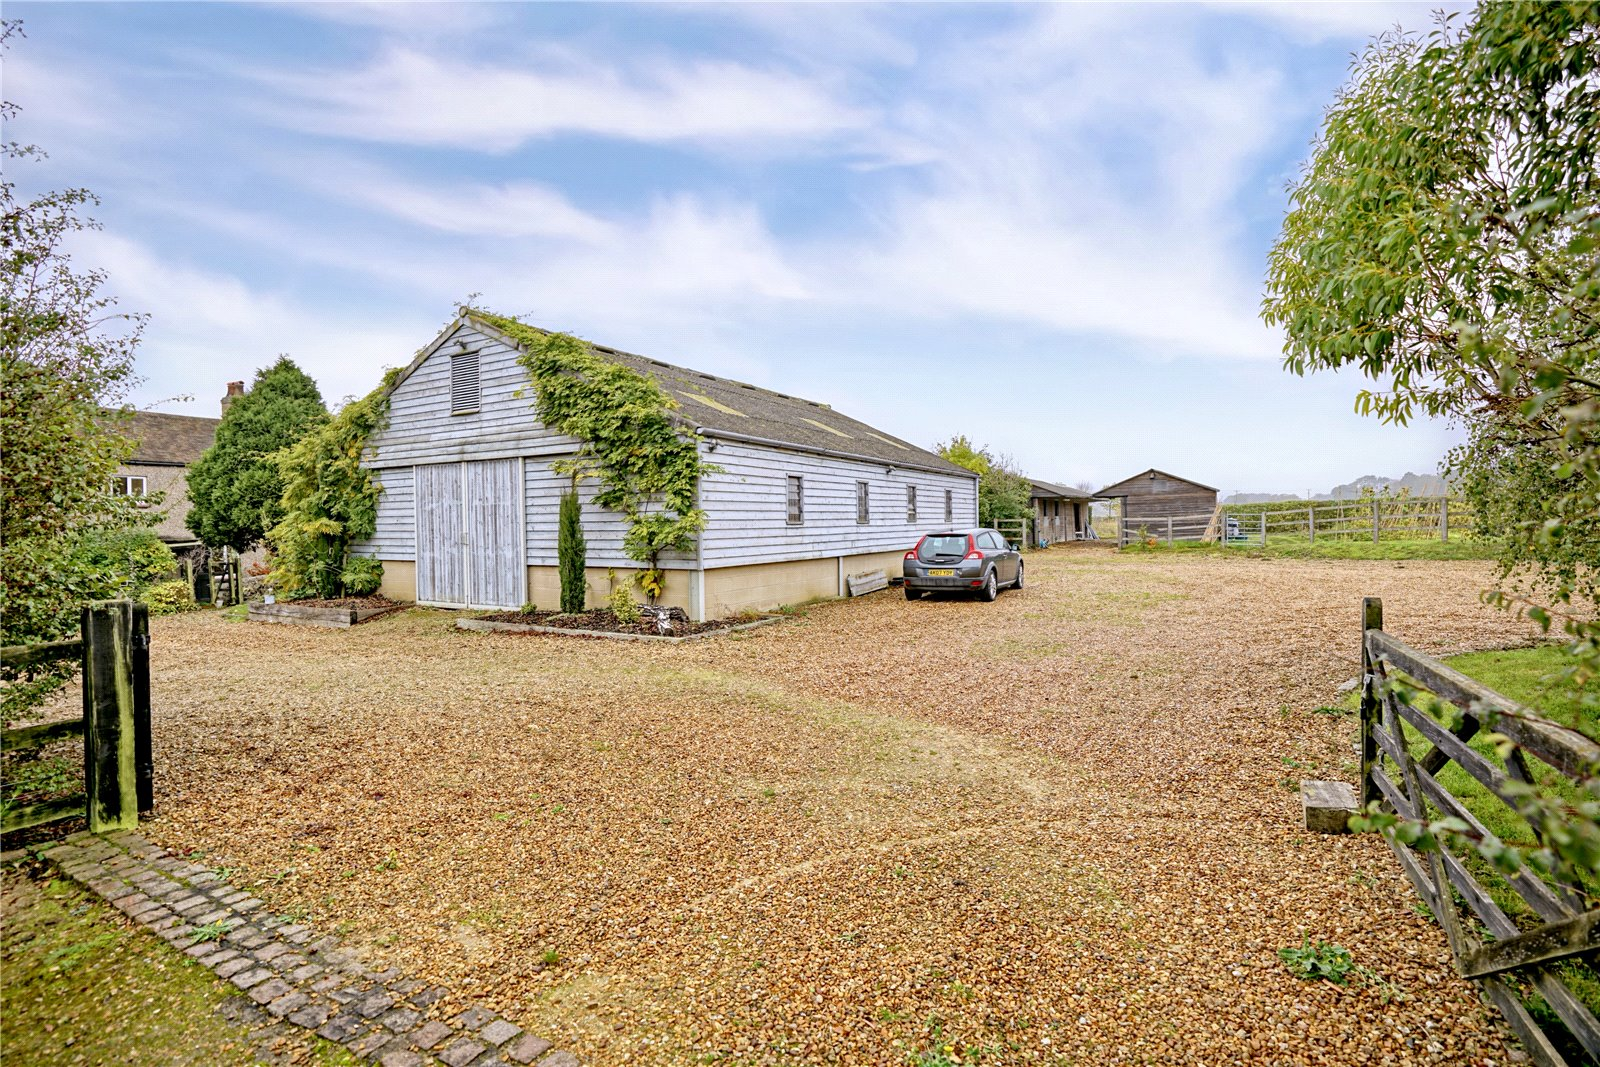 4 bed house for sale in Honeydon, Bedford  - Property Image 14